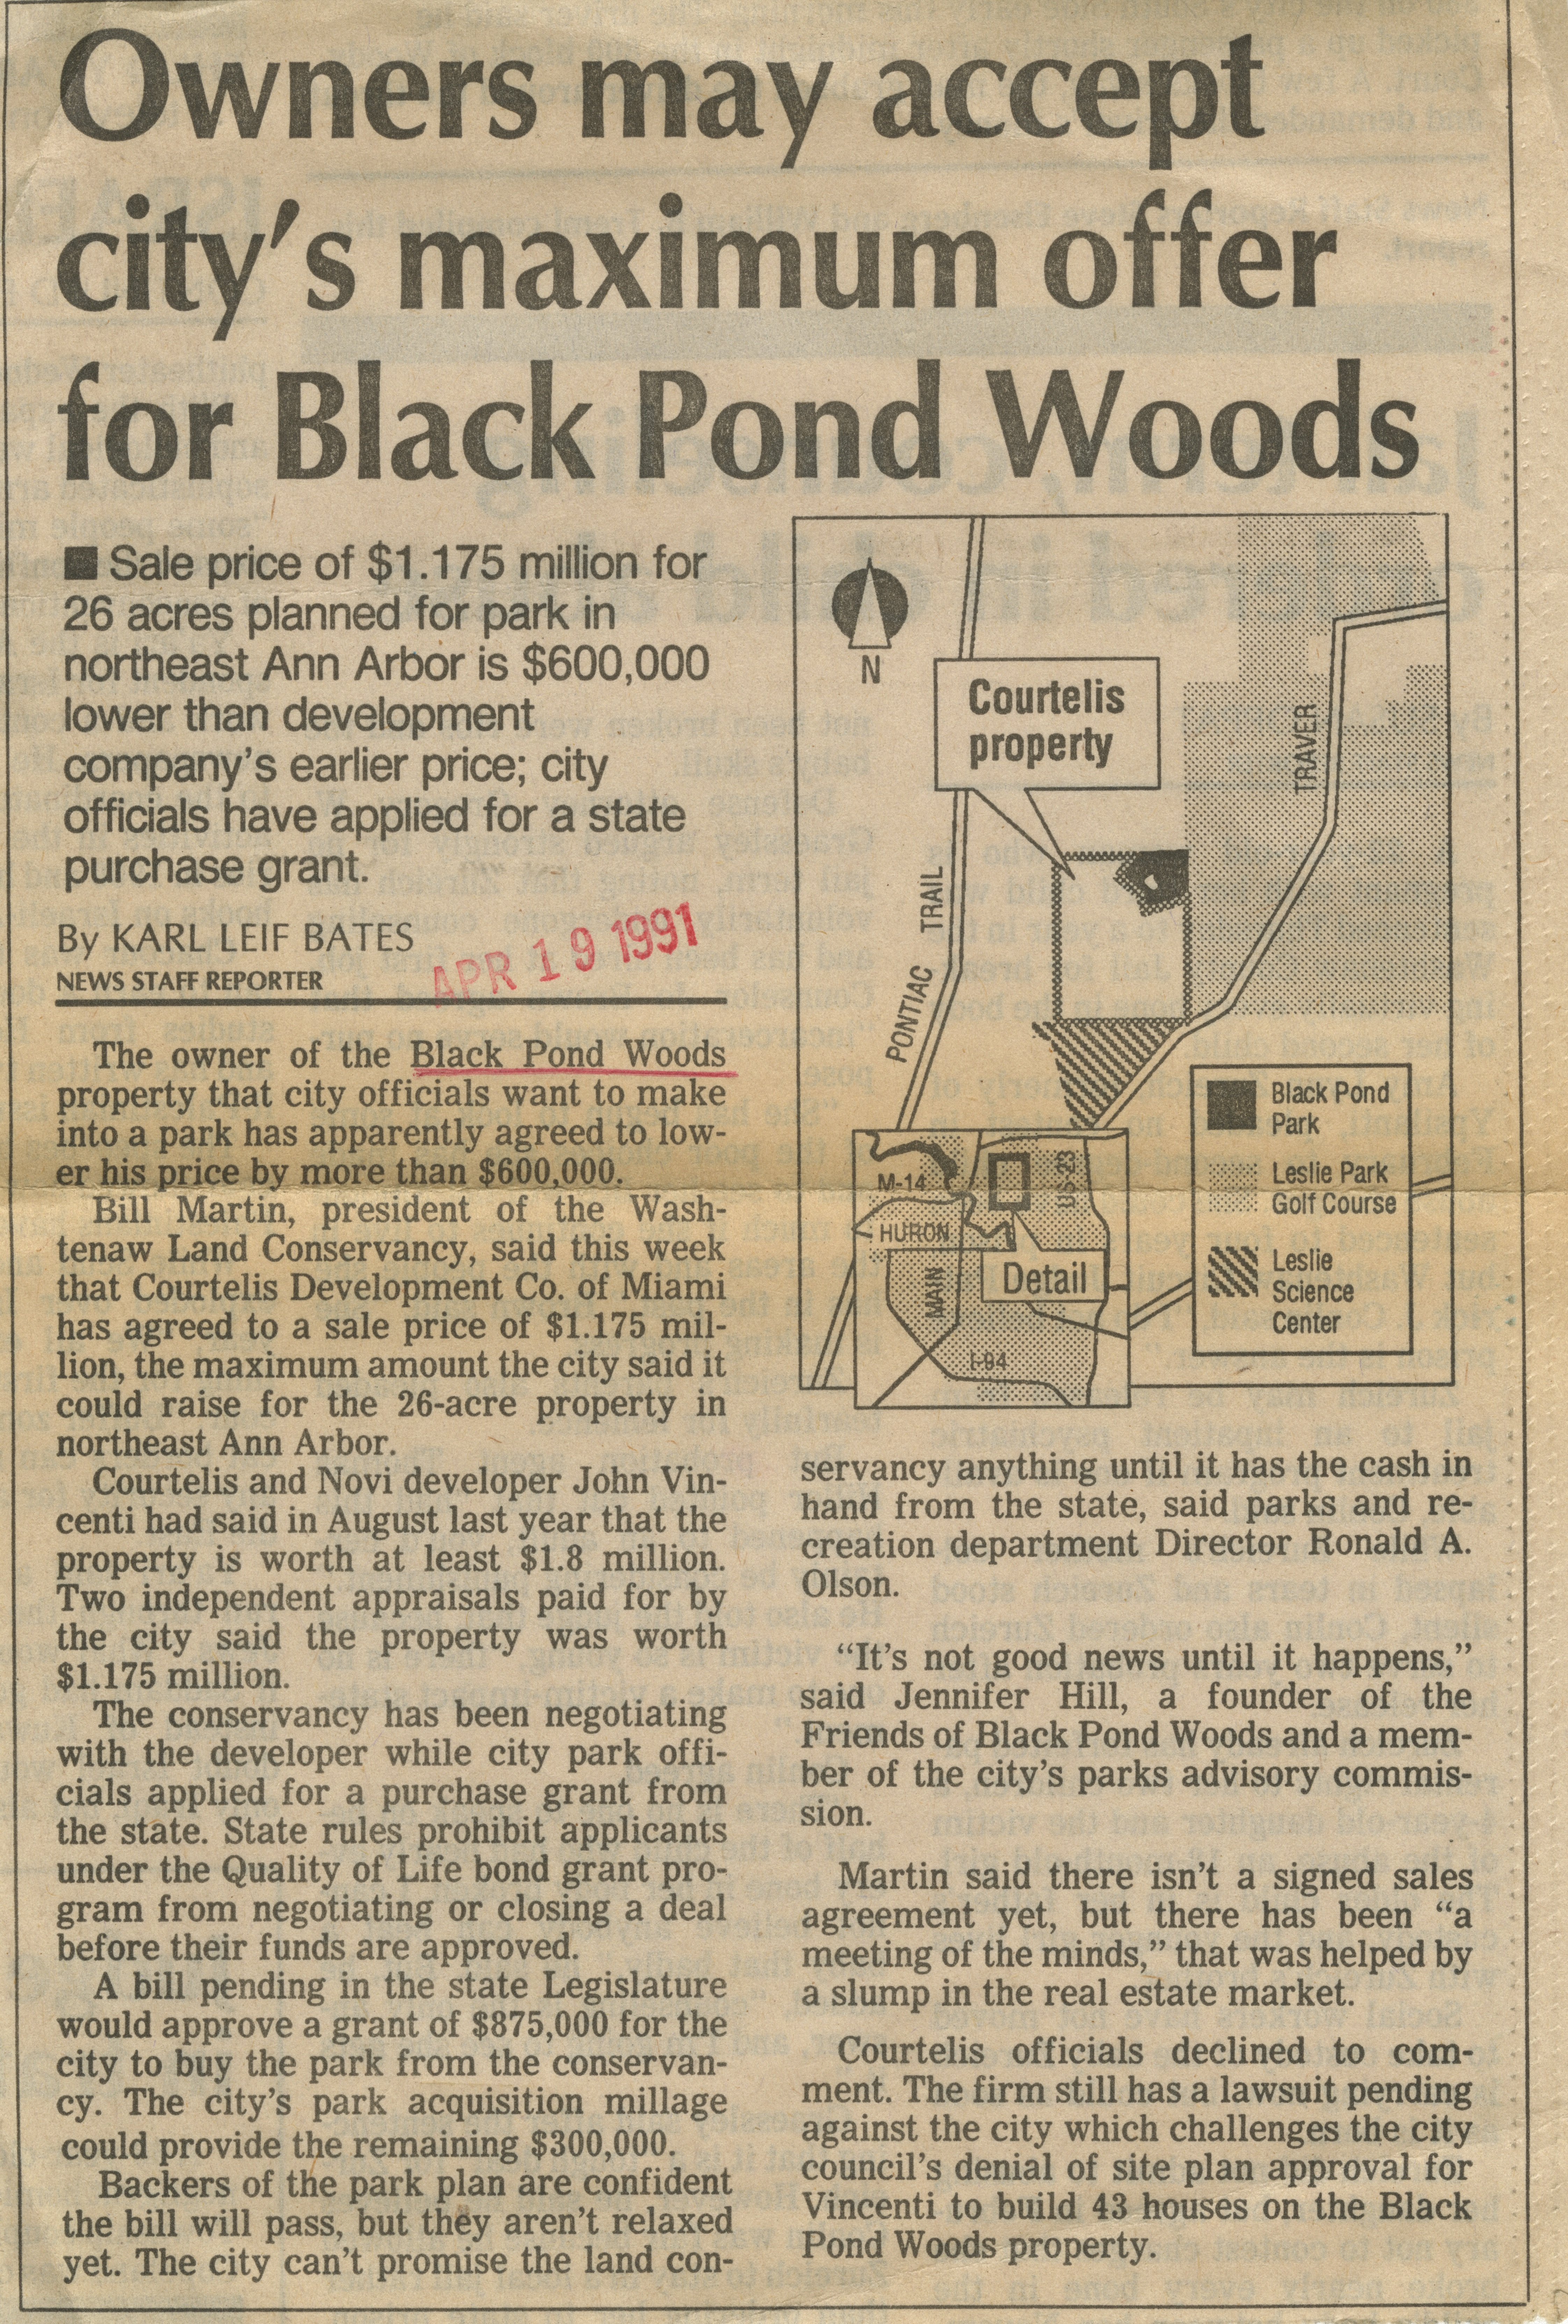 Owners May Accept City's Maximum Offer For Black Pond Woods image